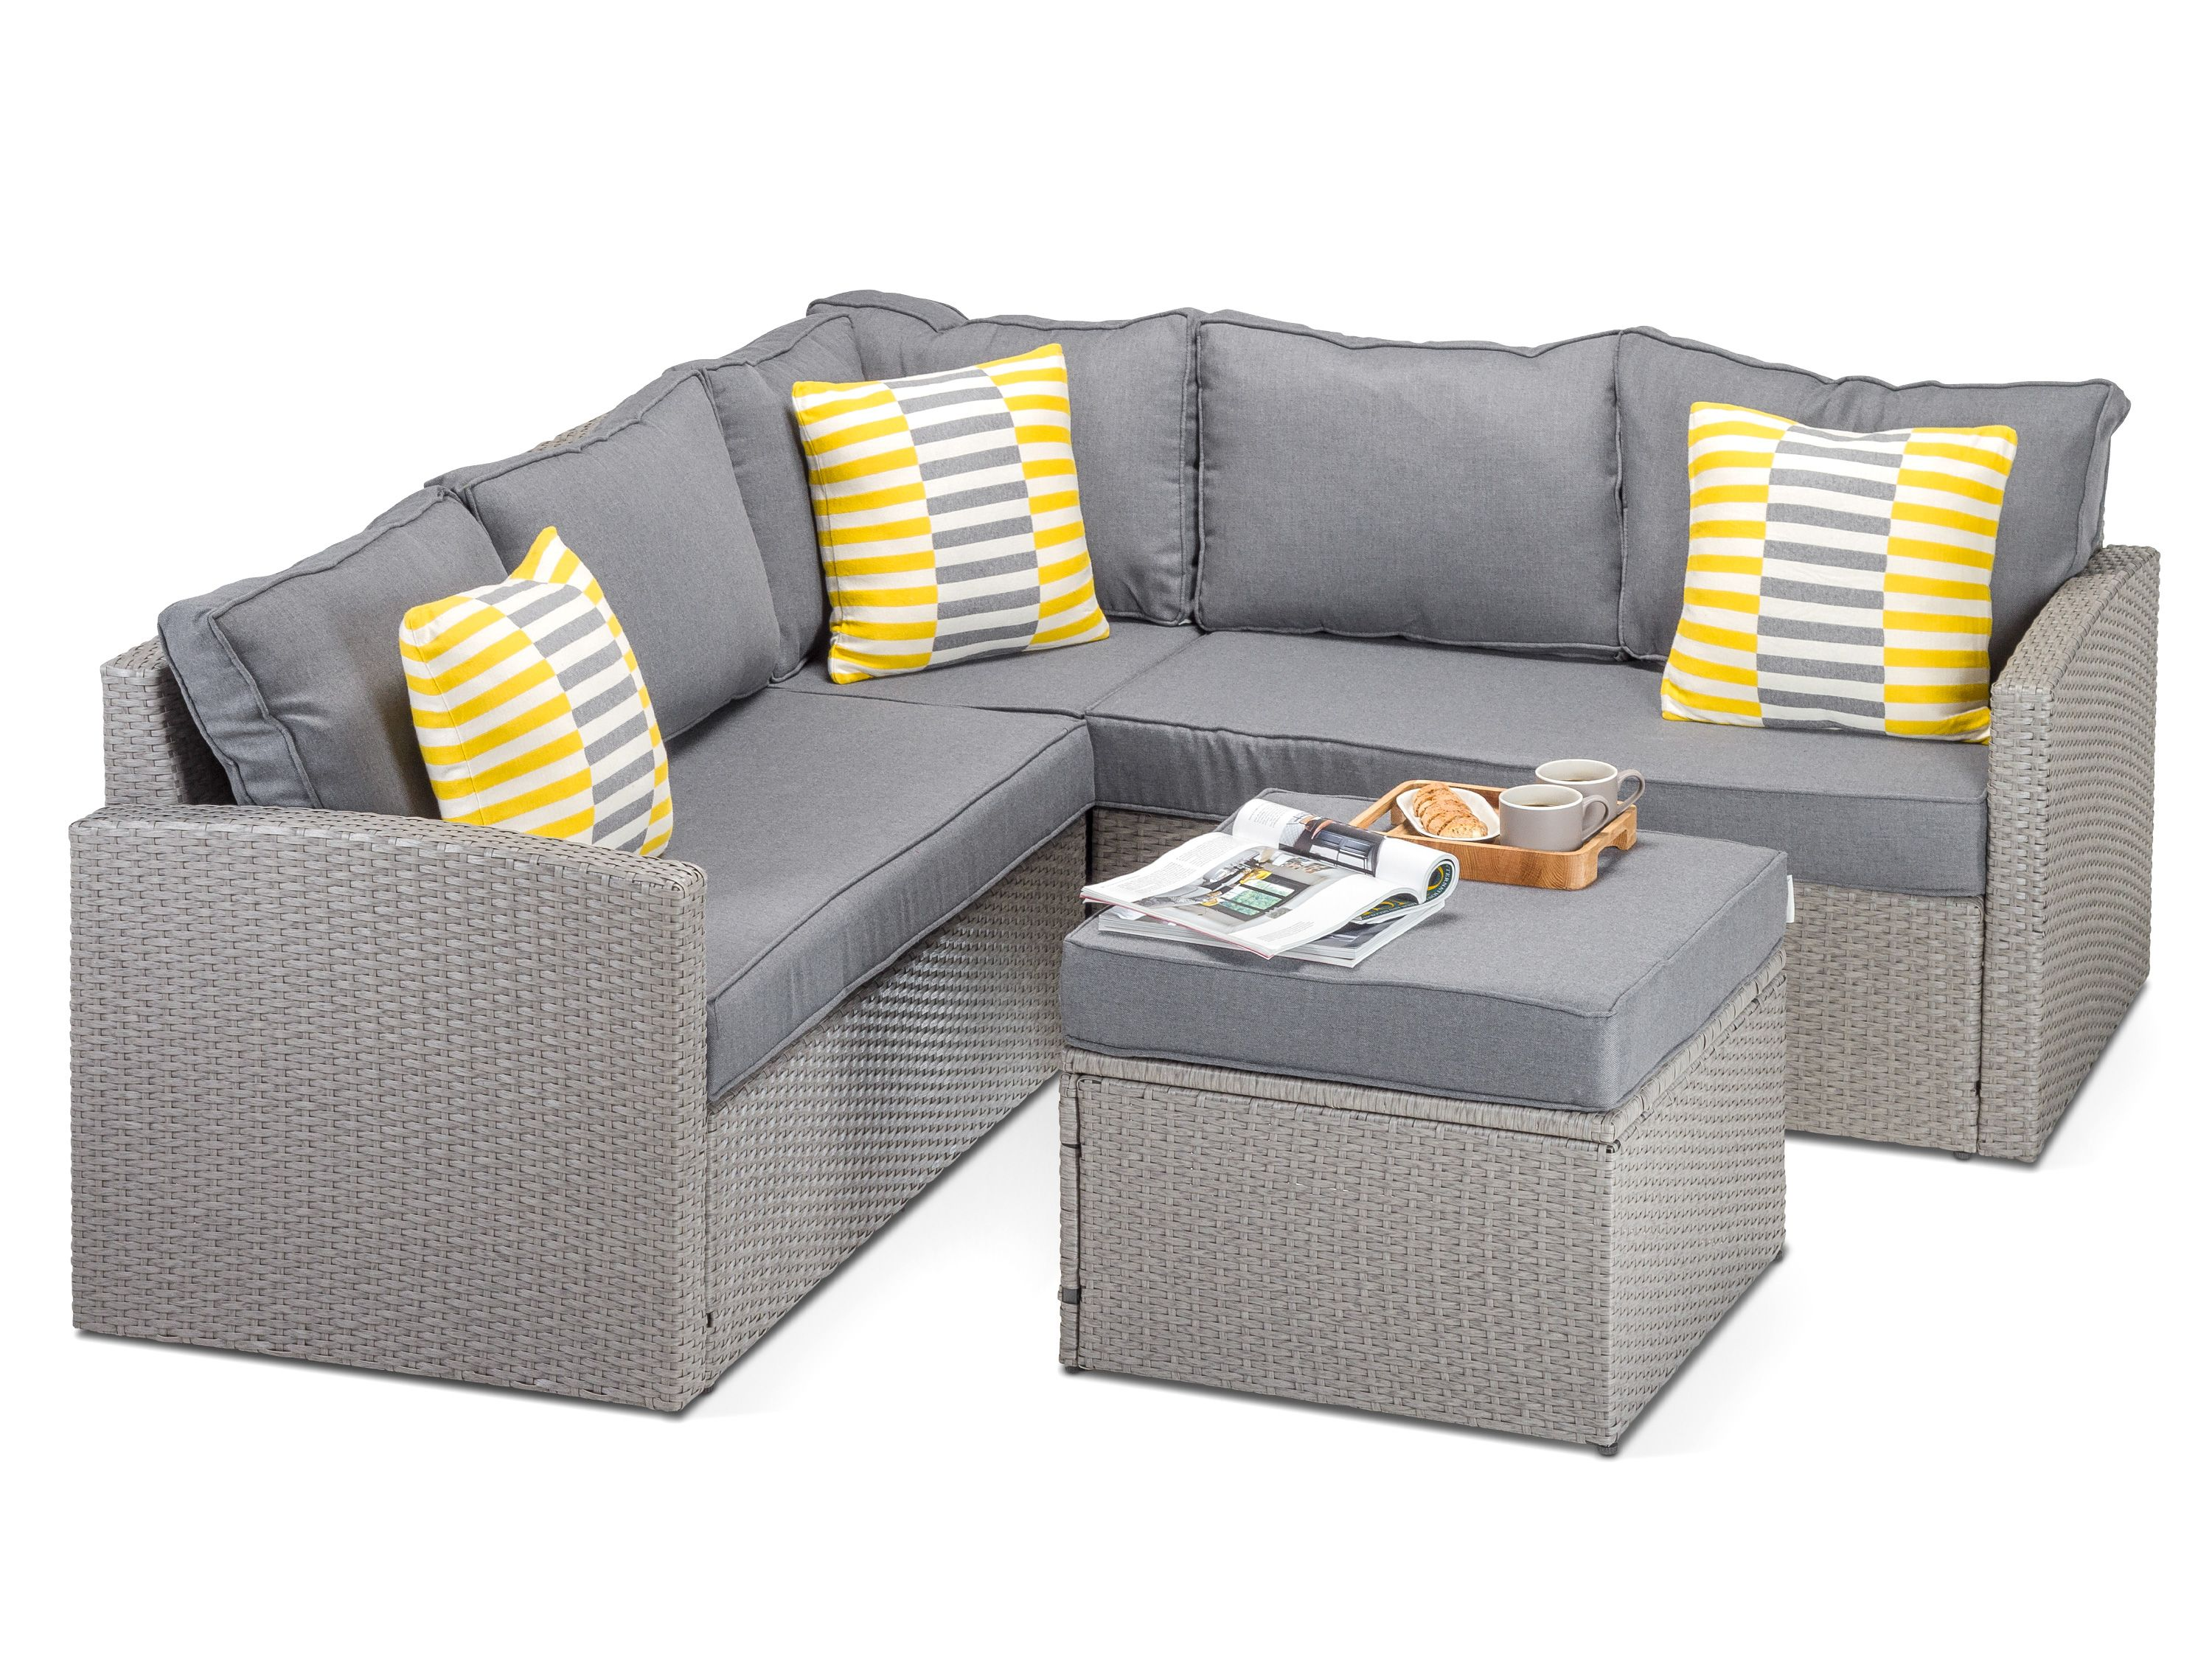 Rattan Sofa Set In Mauritius Rattan Garden Furniture Corner Sofa Grey Review Home Co